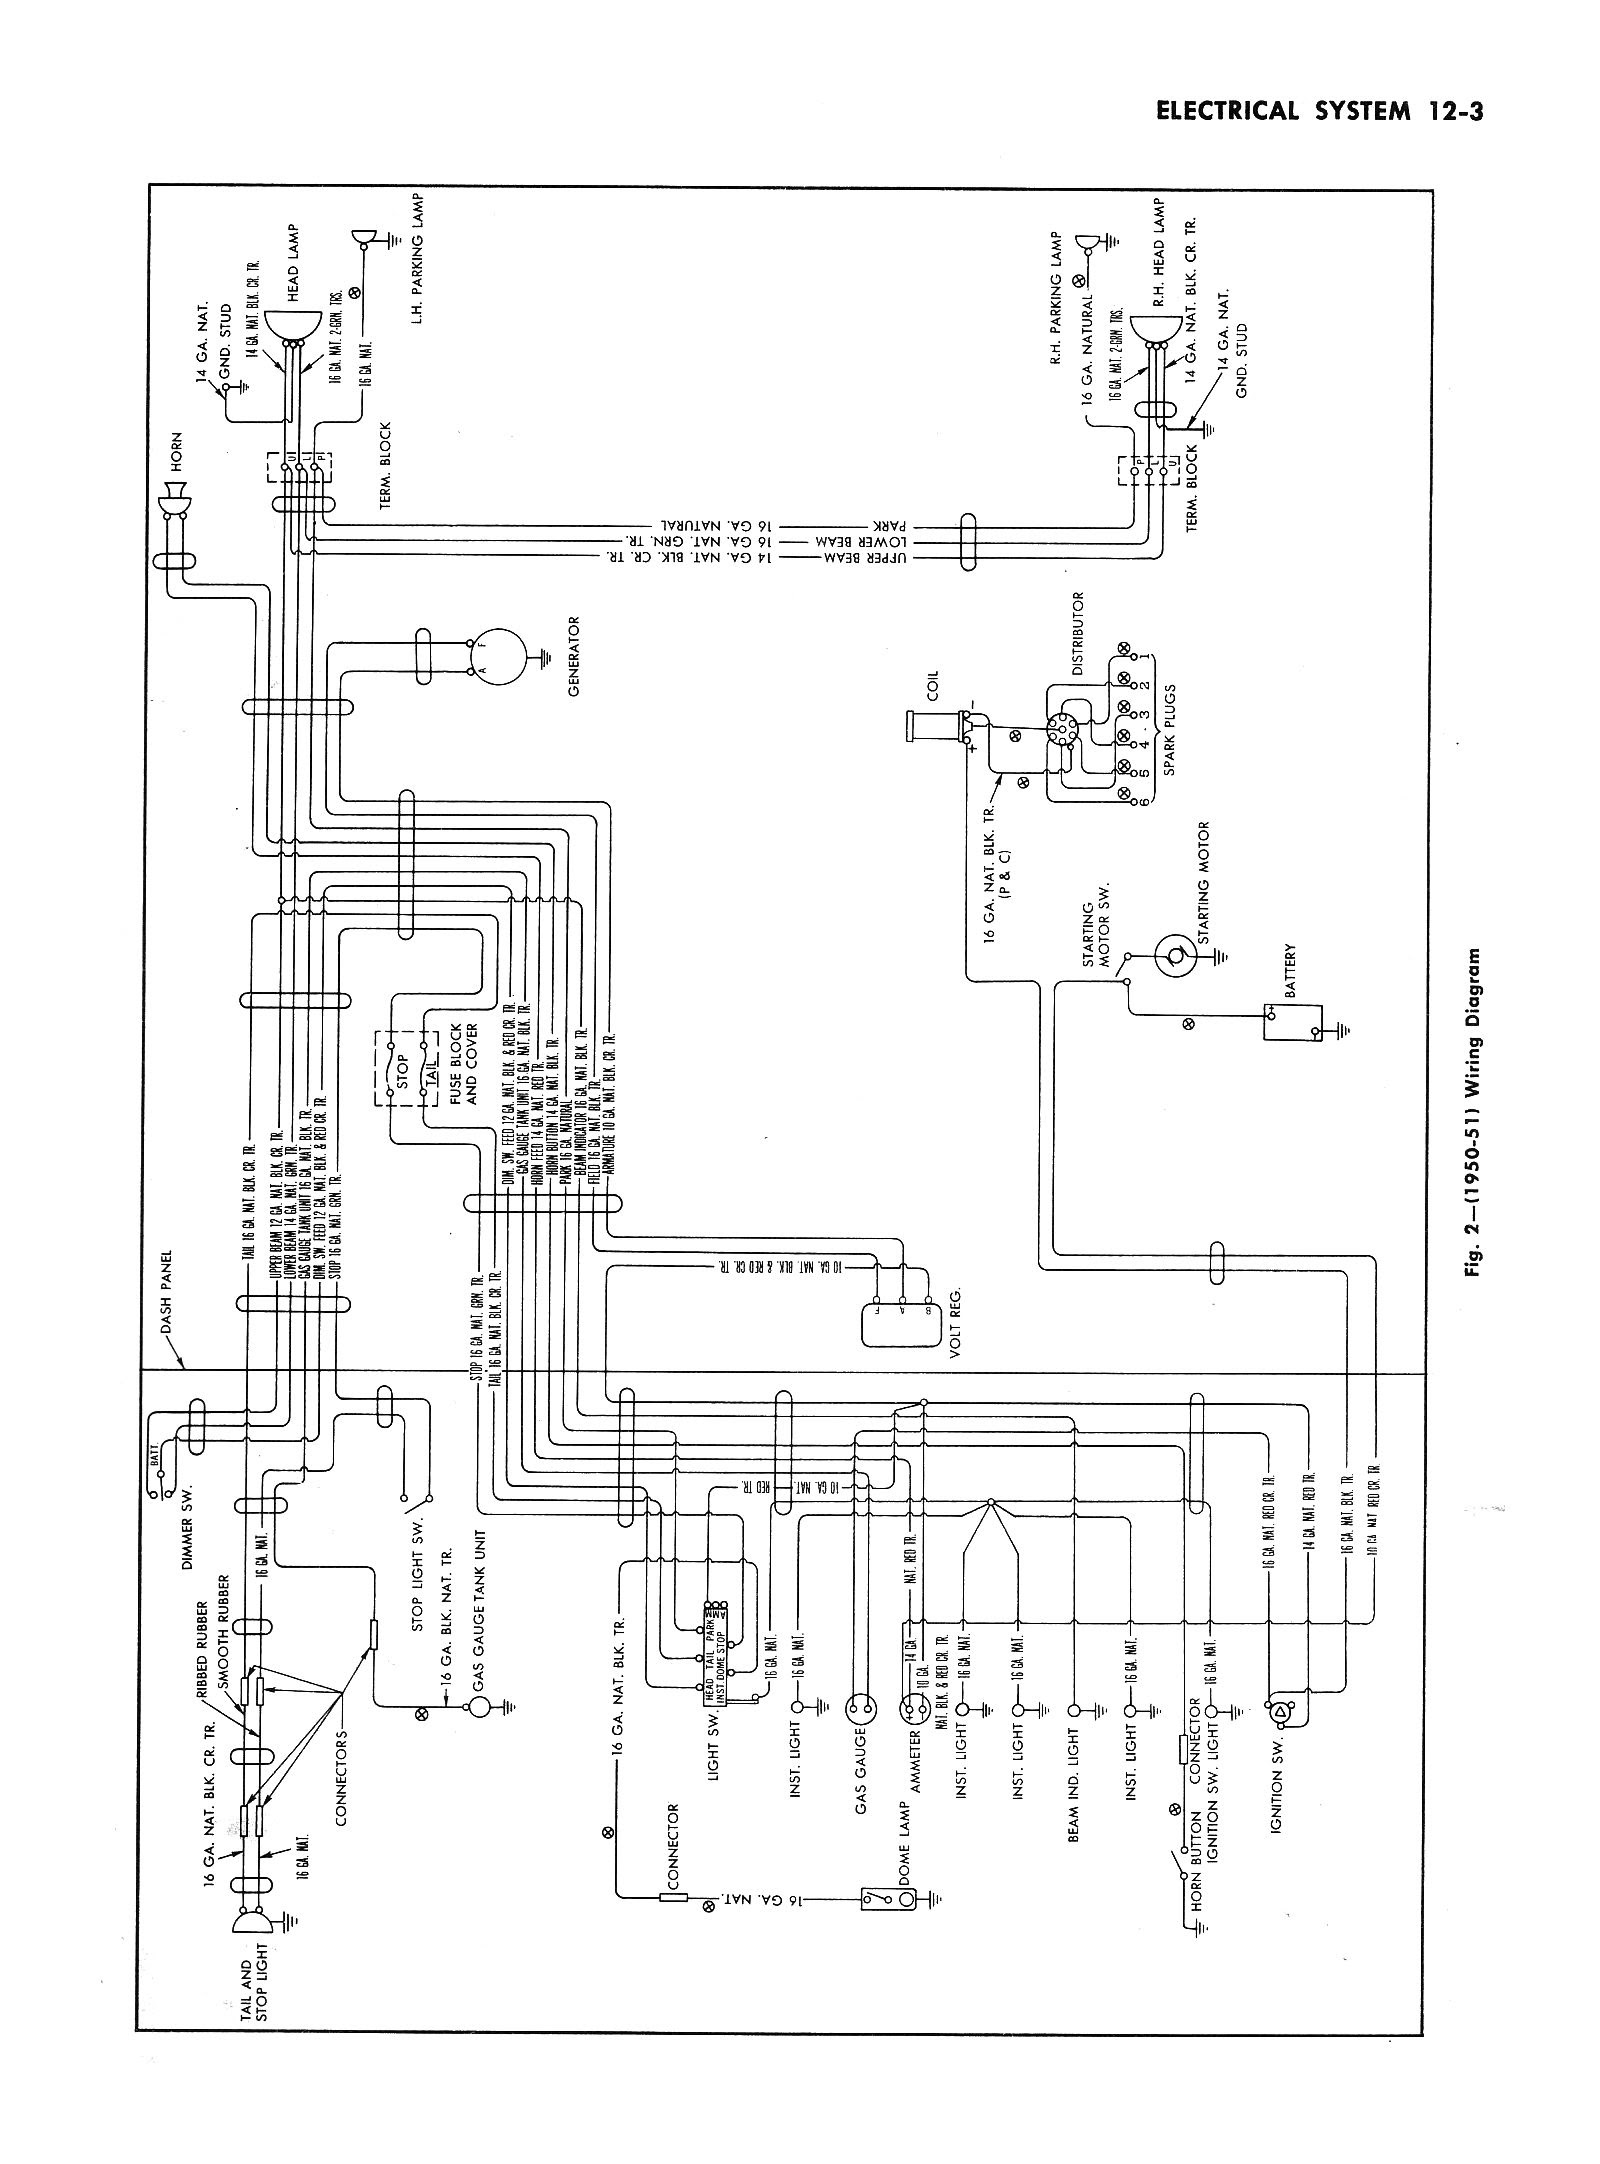 4c6 Honda Accord Wagon Wiring Schematic Wiring Diagram Library